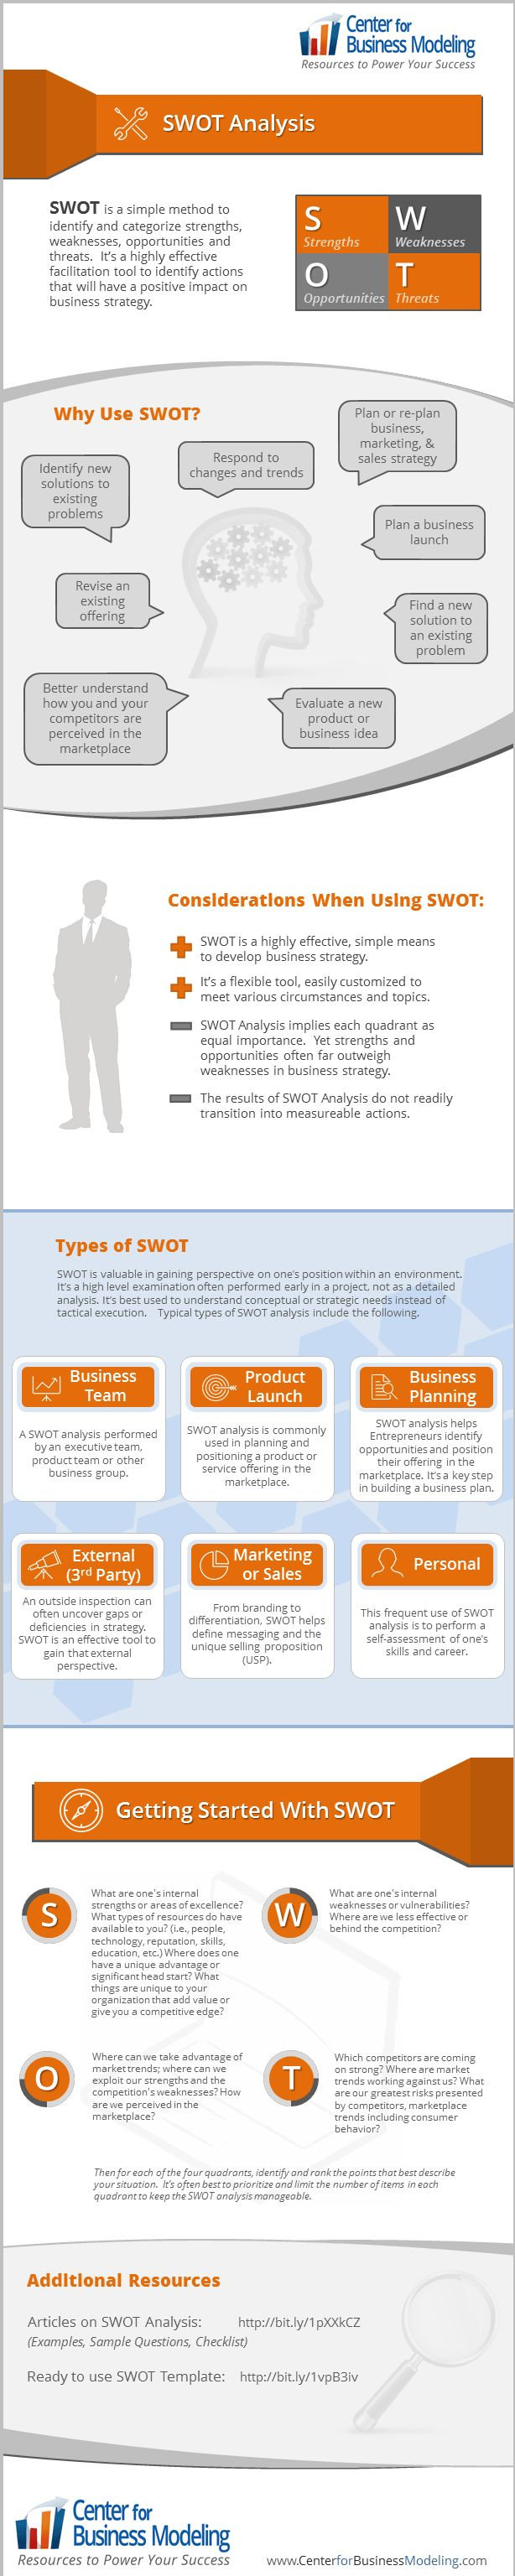 swot analysis has many uses and How to use swot analysis in branding and marketing what are the benefits and limitations of the swot analysis in business planning.